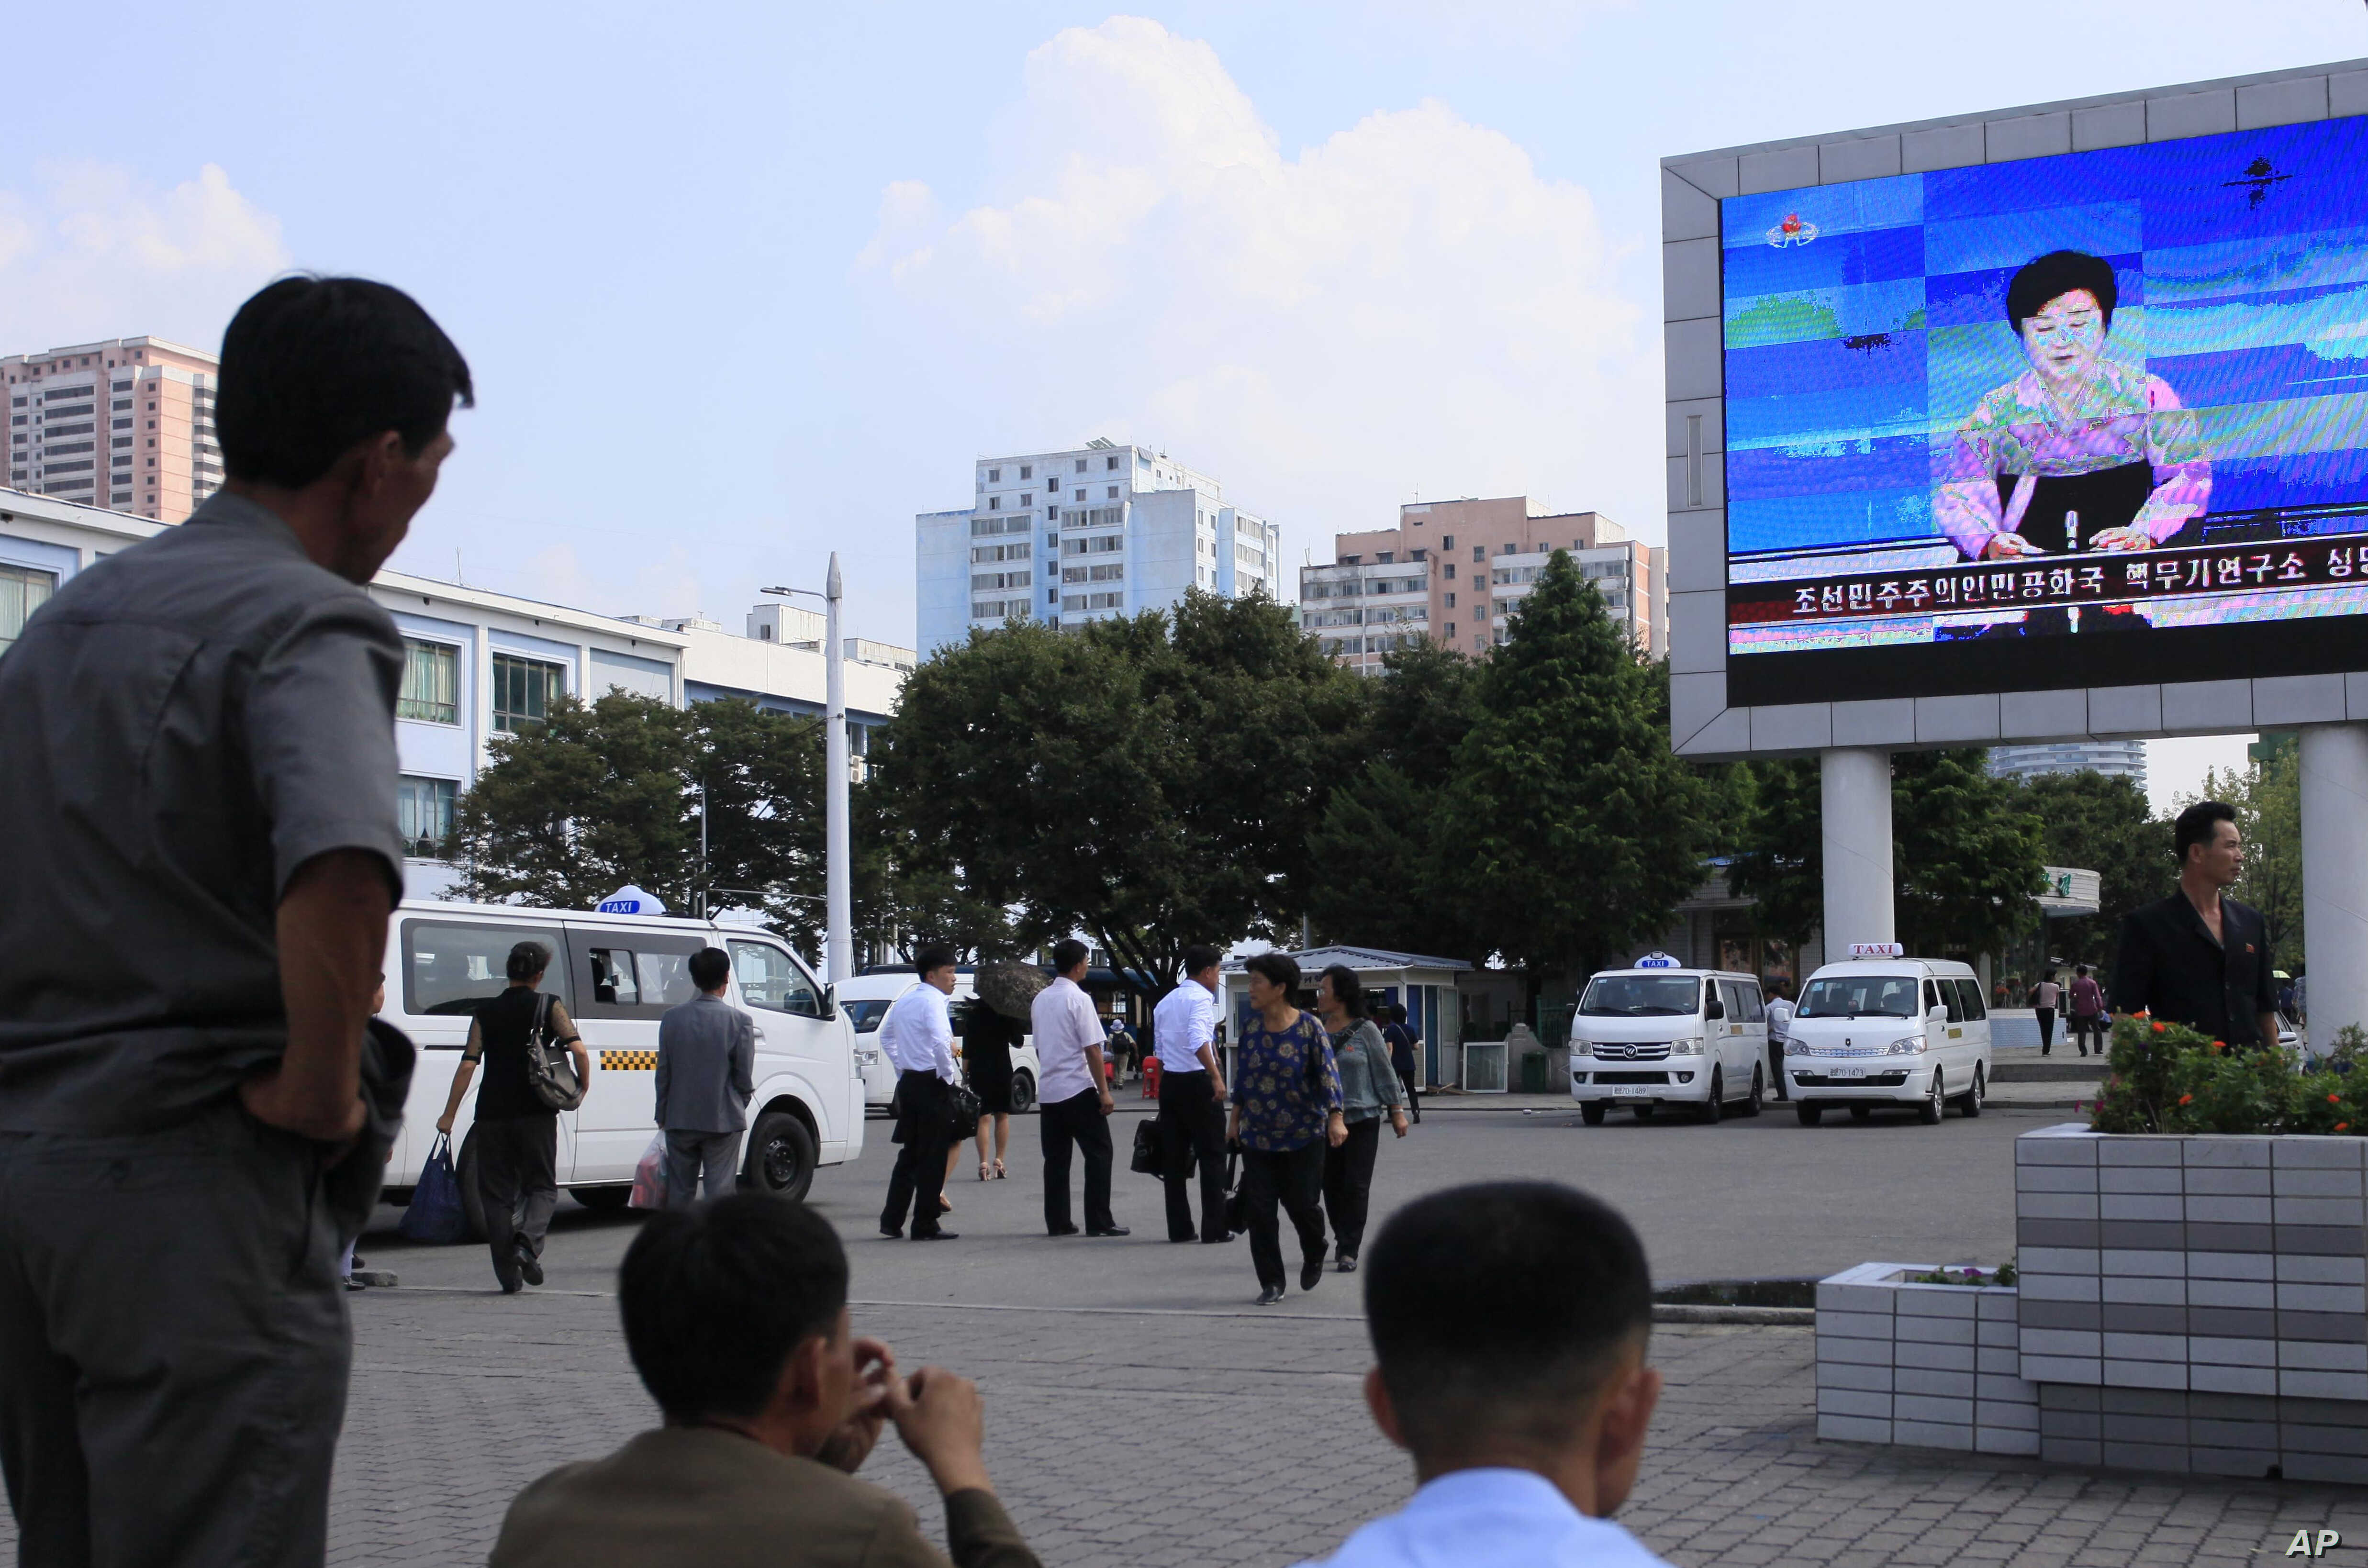 North Koreans watch a news report regarding a nuclear test on a large screen outside the Pyongyang Station in Pyongyang, North Korea, Friday, Sept. 9, 2016.